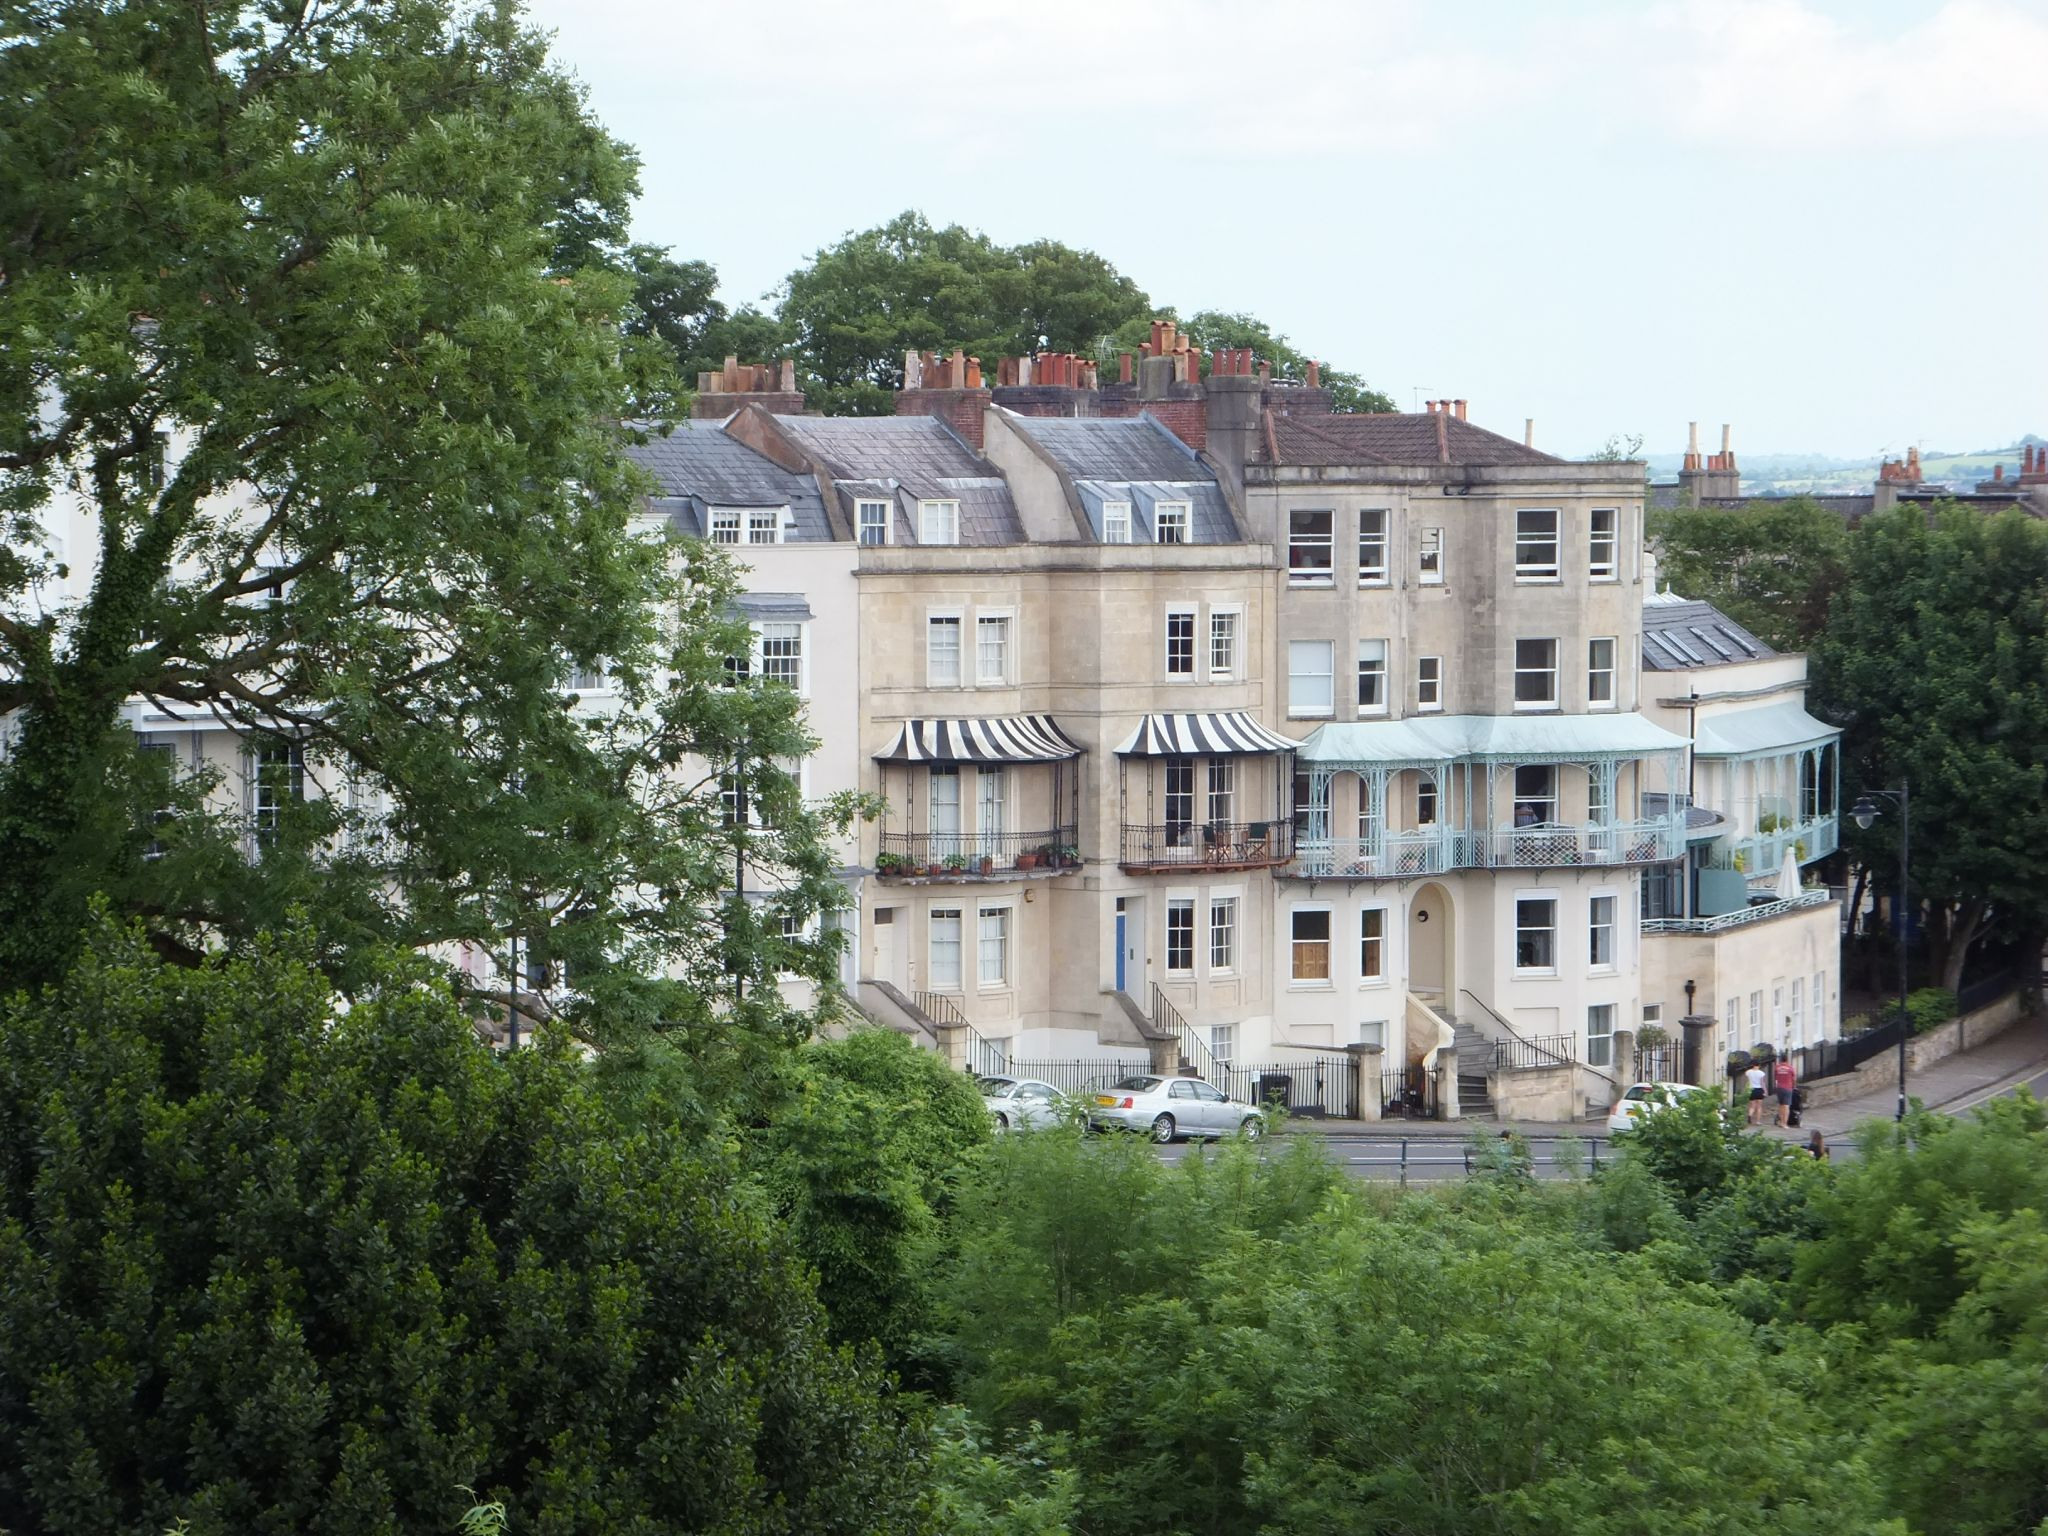 Houses in Clifton